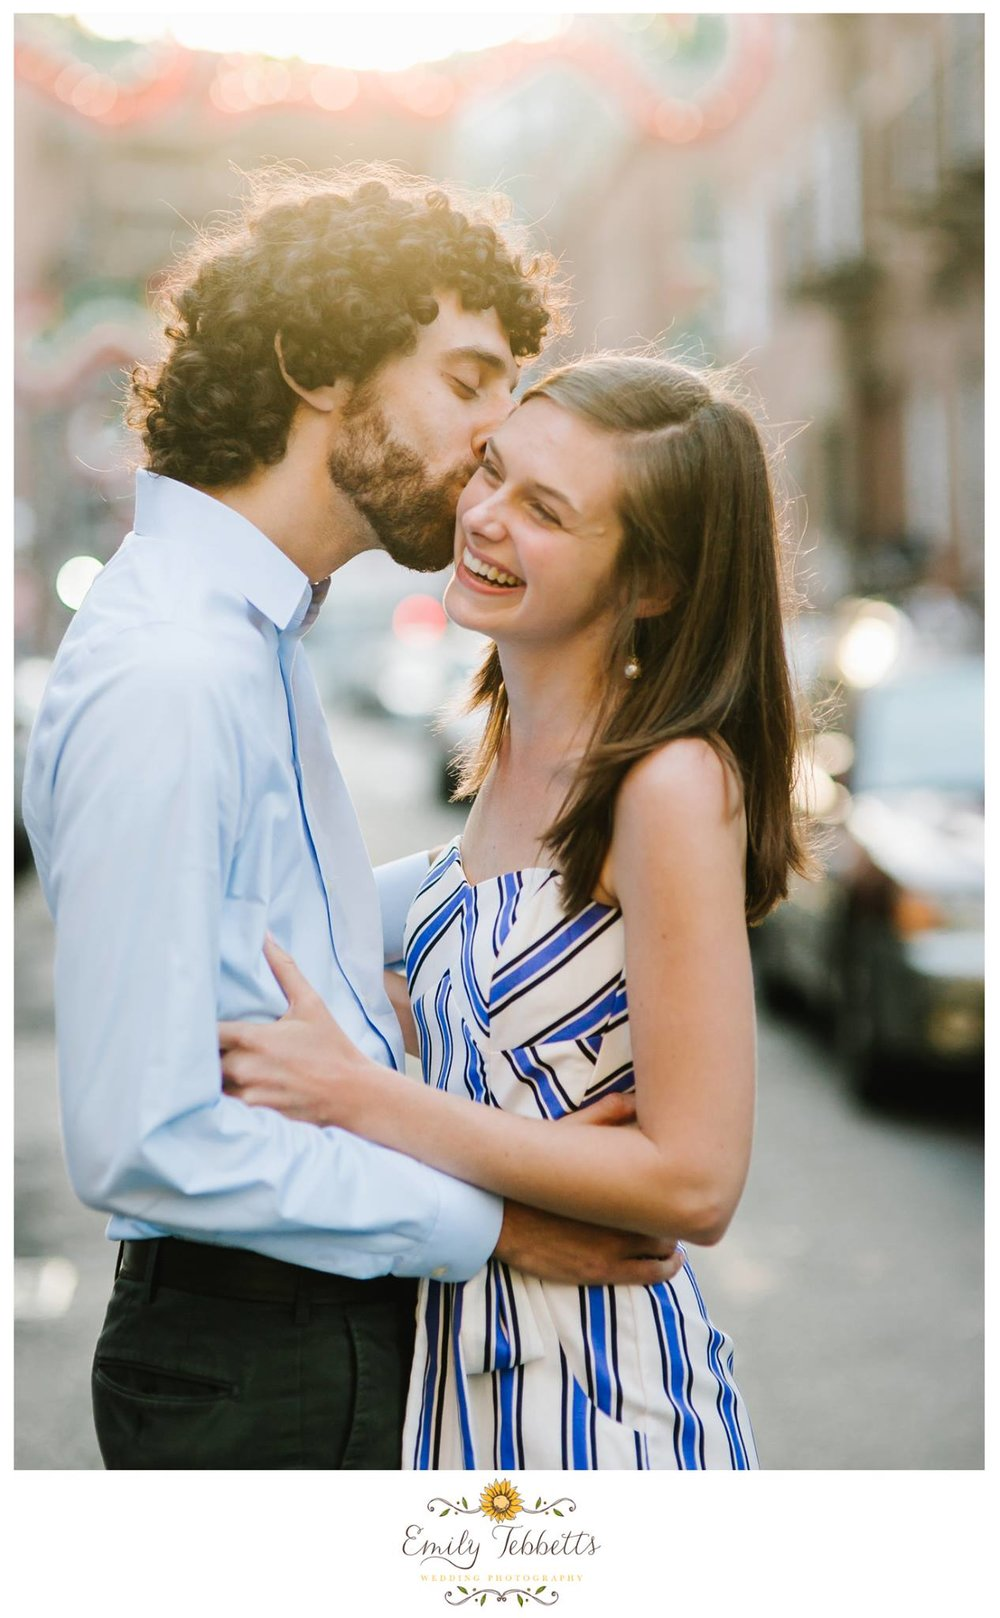 Emily Tebbetts Wedding Photography - North End Engagement Session Sneak Peeks 1.jpg